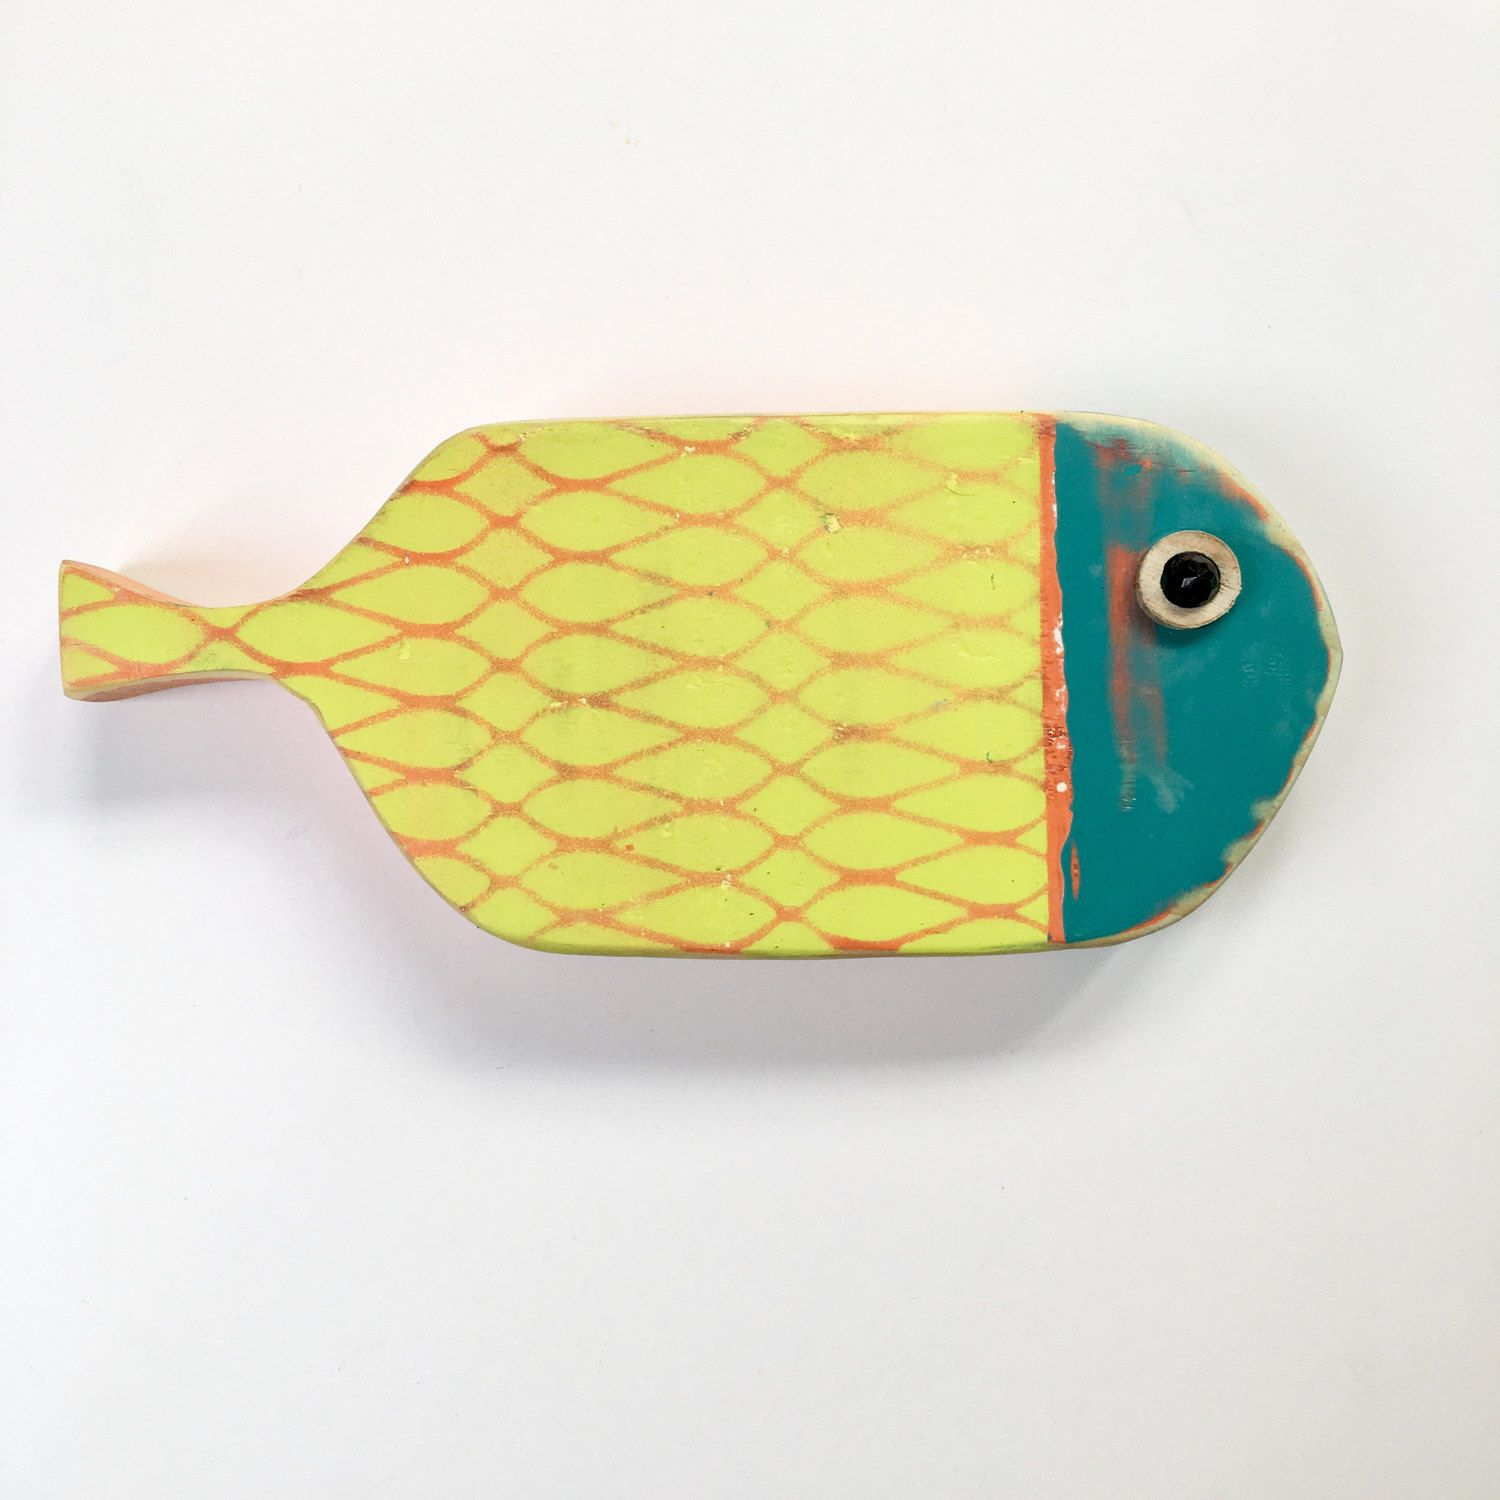 Whimsical driftwood folk art fish for wall and interior decor ...